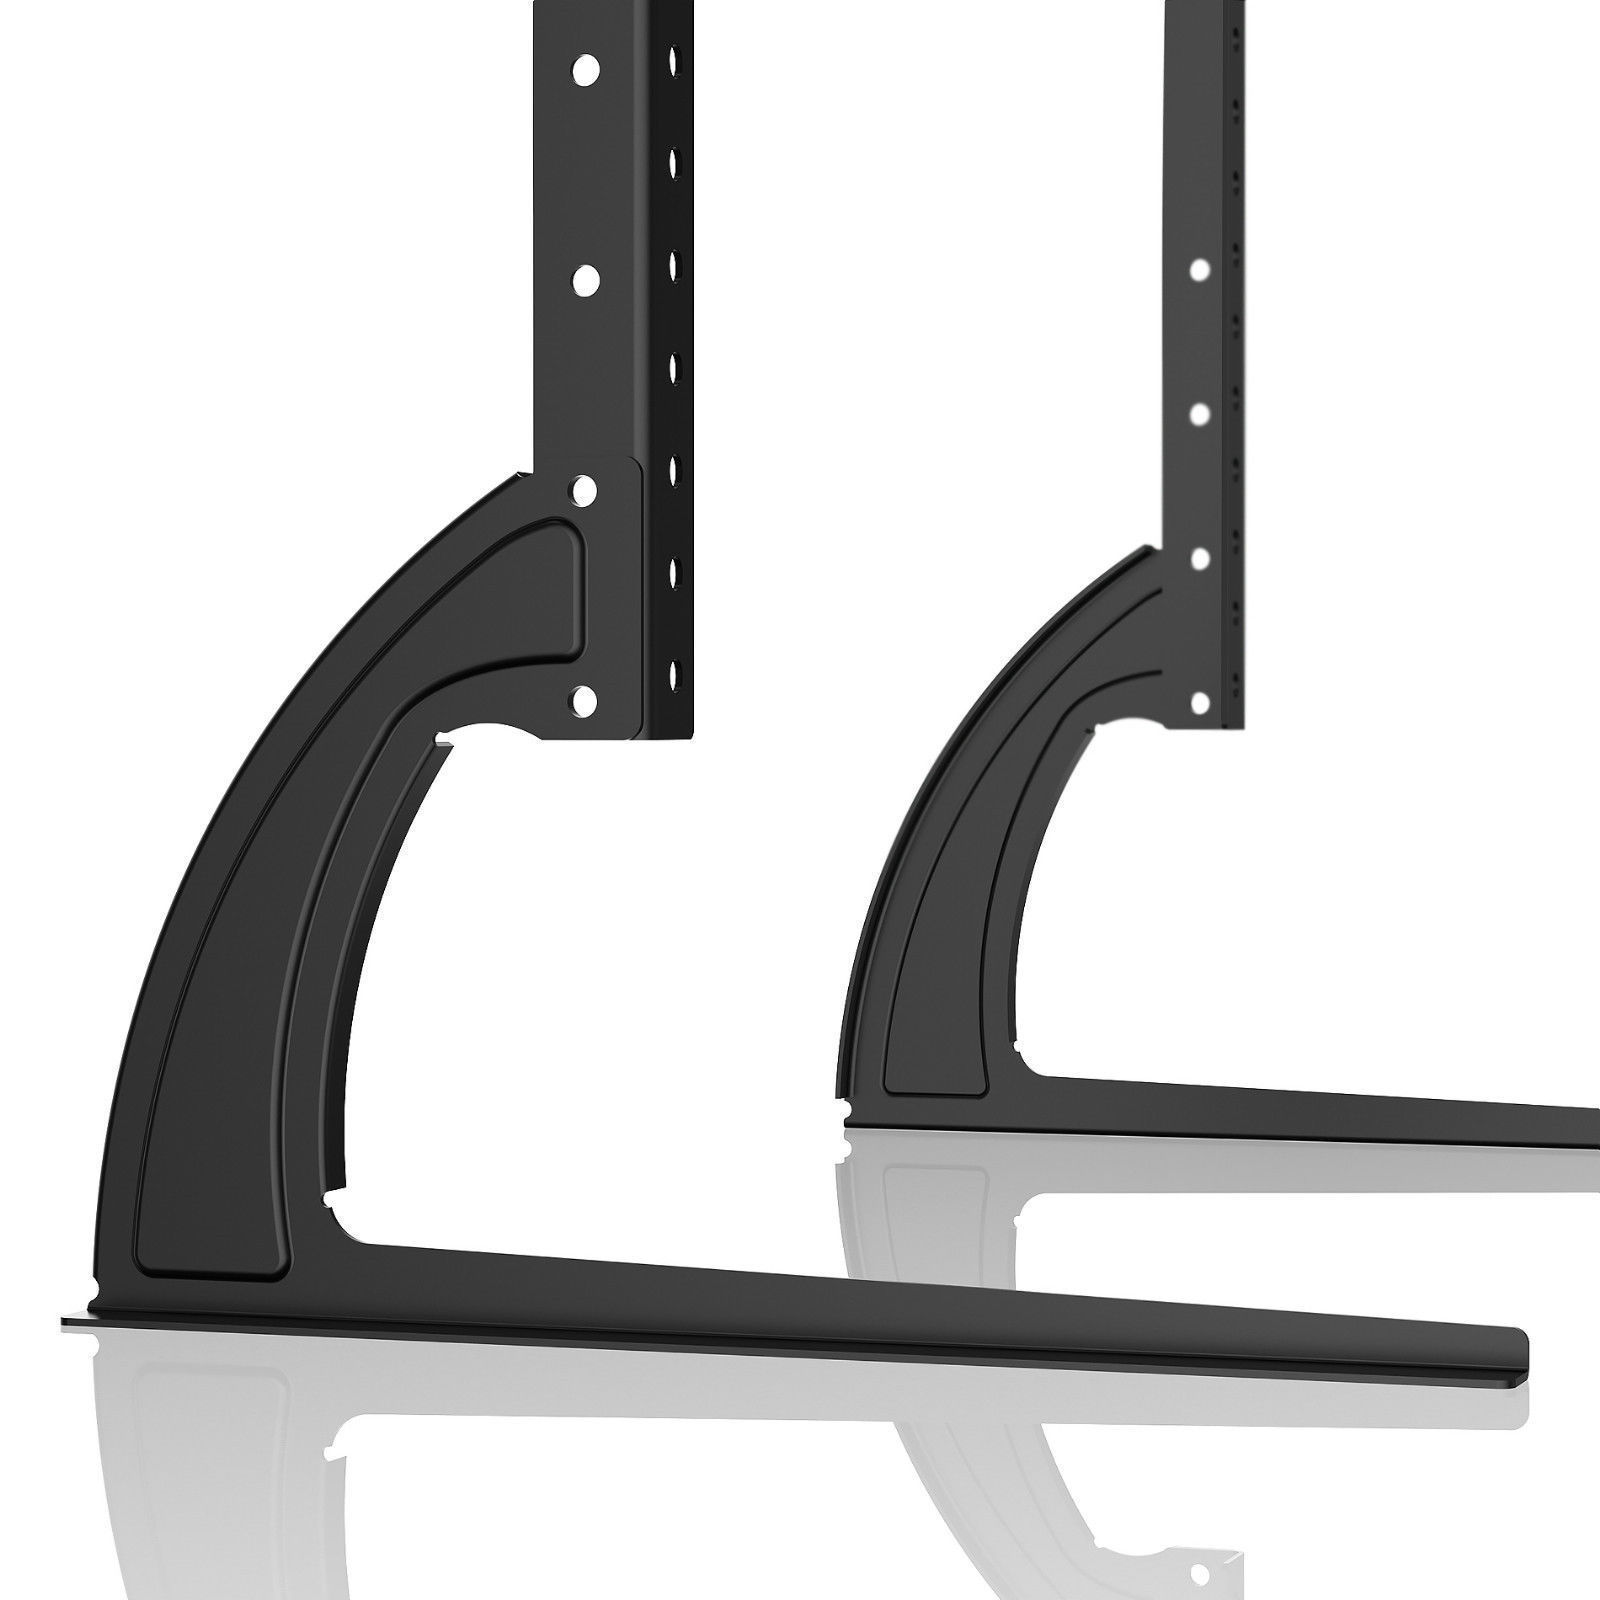 Universal Table Top TV Stand Legs for JVC LT-42P789 Height Adjustable